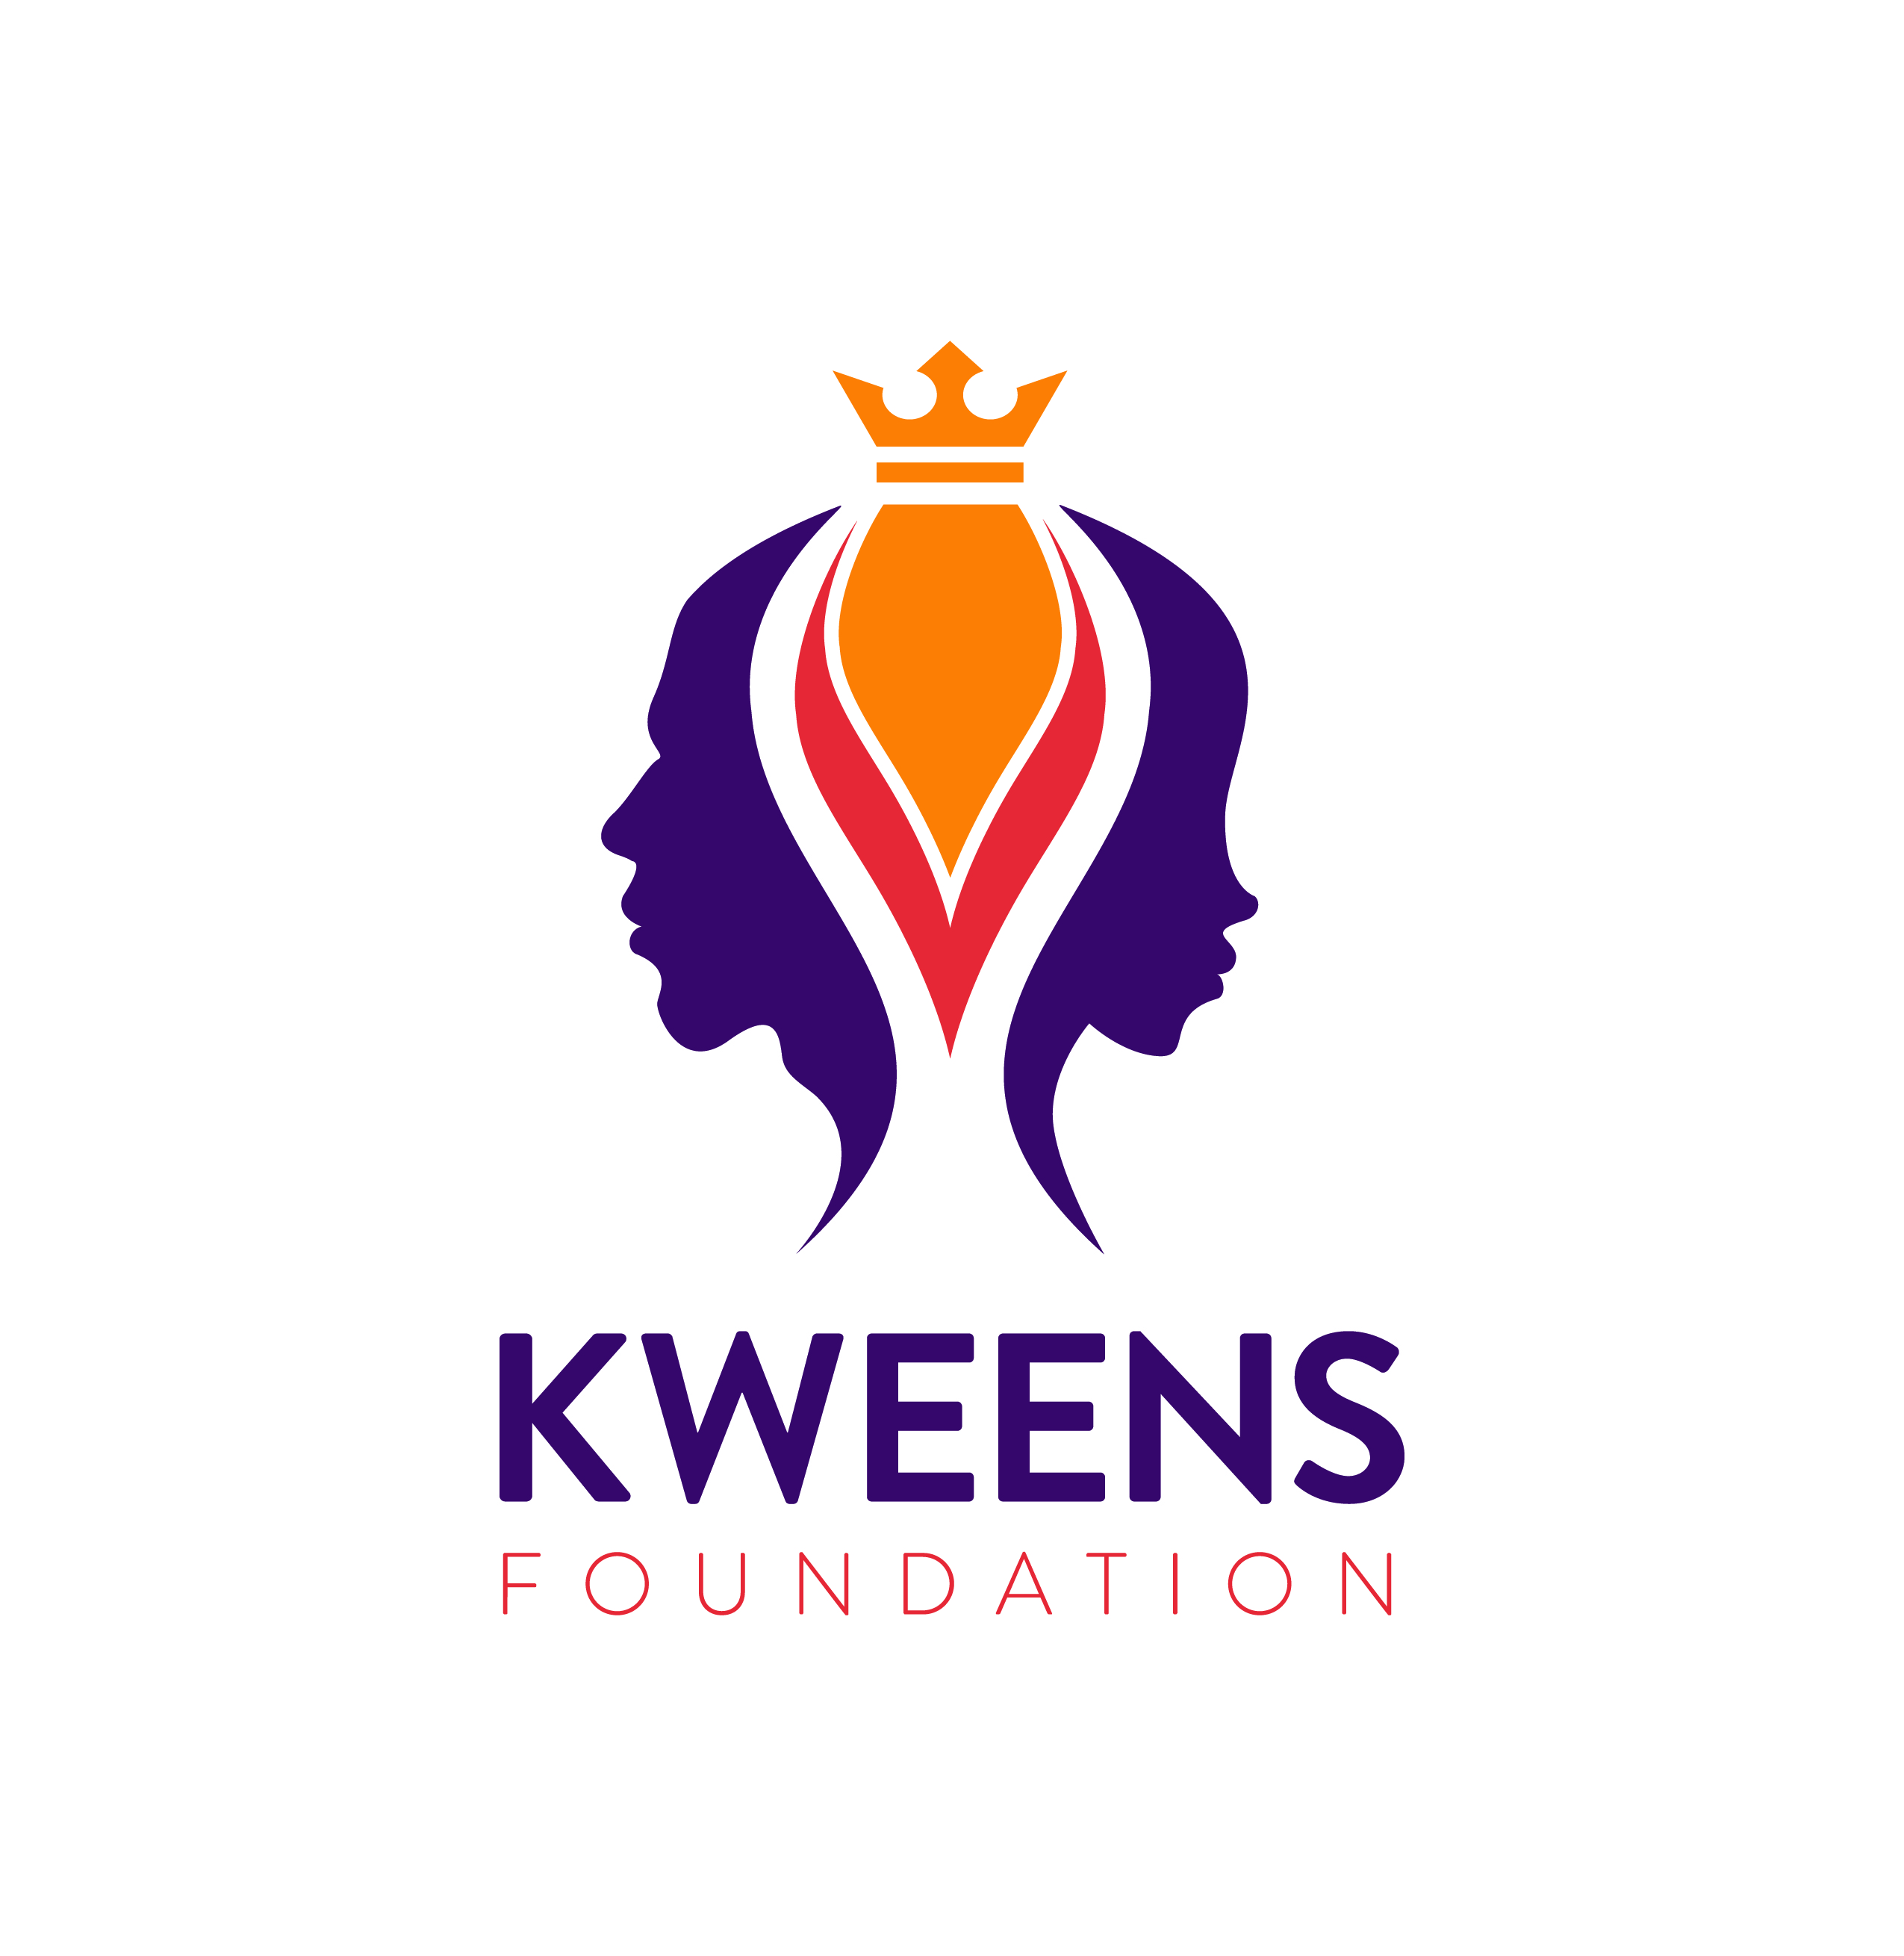 Kweens Foundation